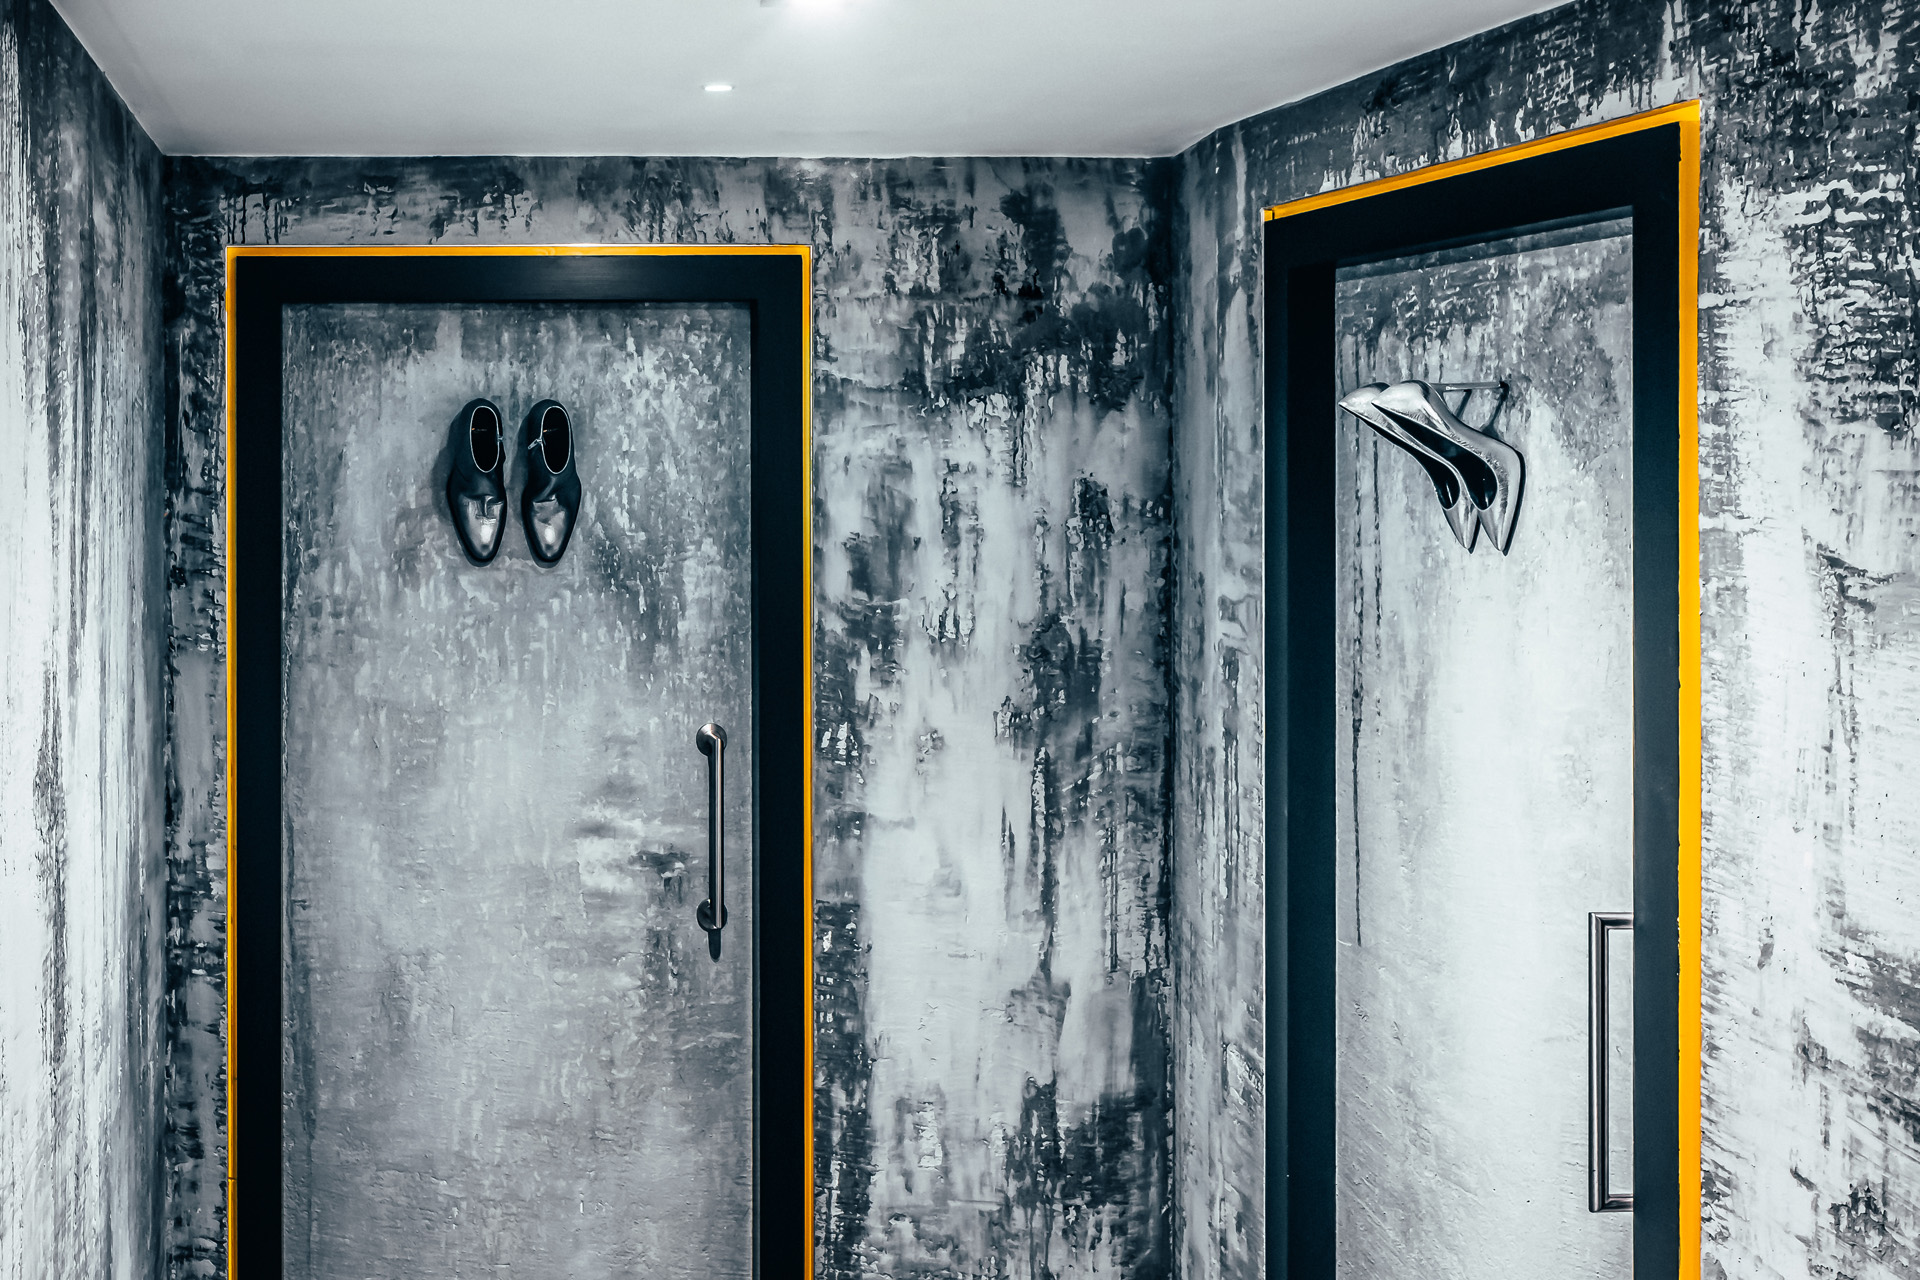 Stand-Out Interior Features that Customers Will Want to Snap //  The Man Behind the Curtain, Leeds